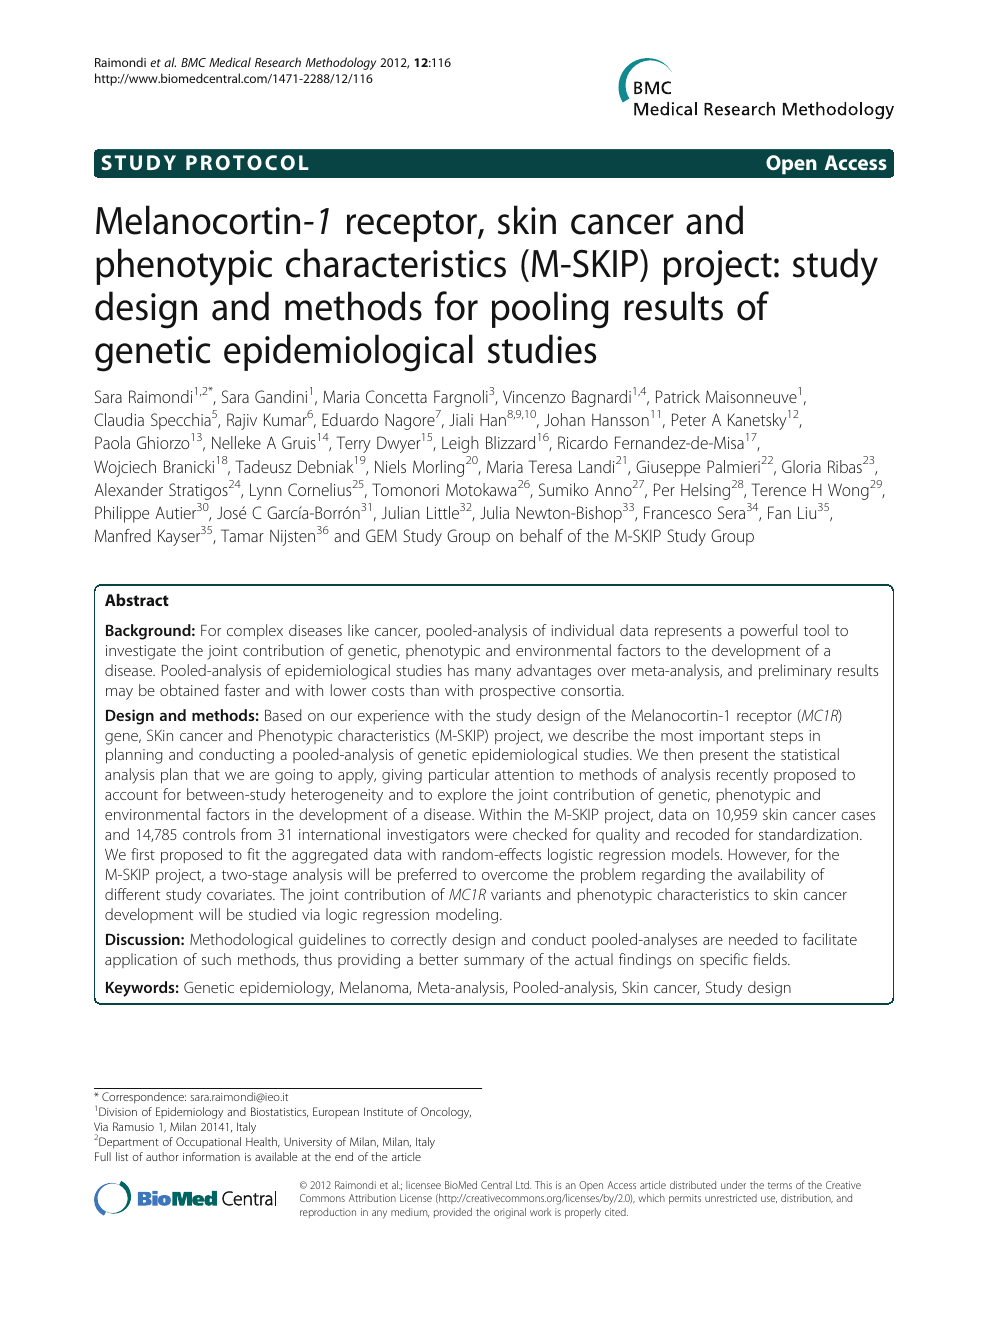 Melanocortin-1 receptor, skin cancer and phenotypic